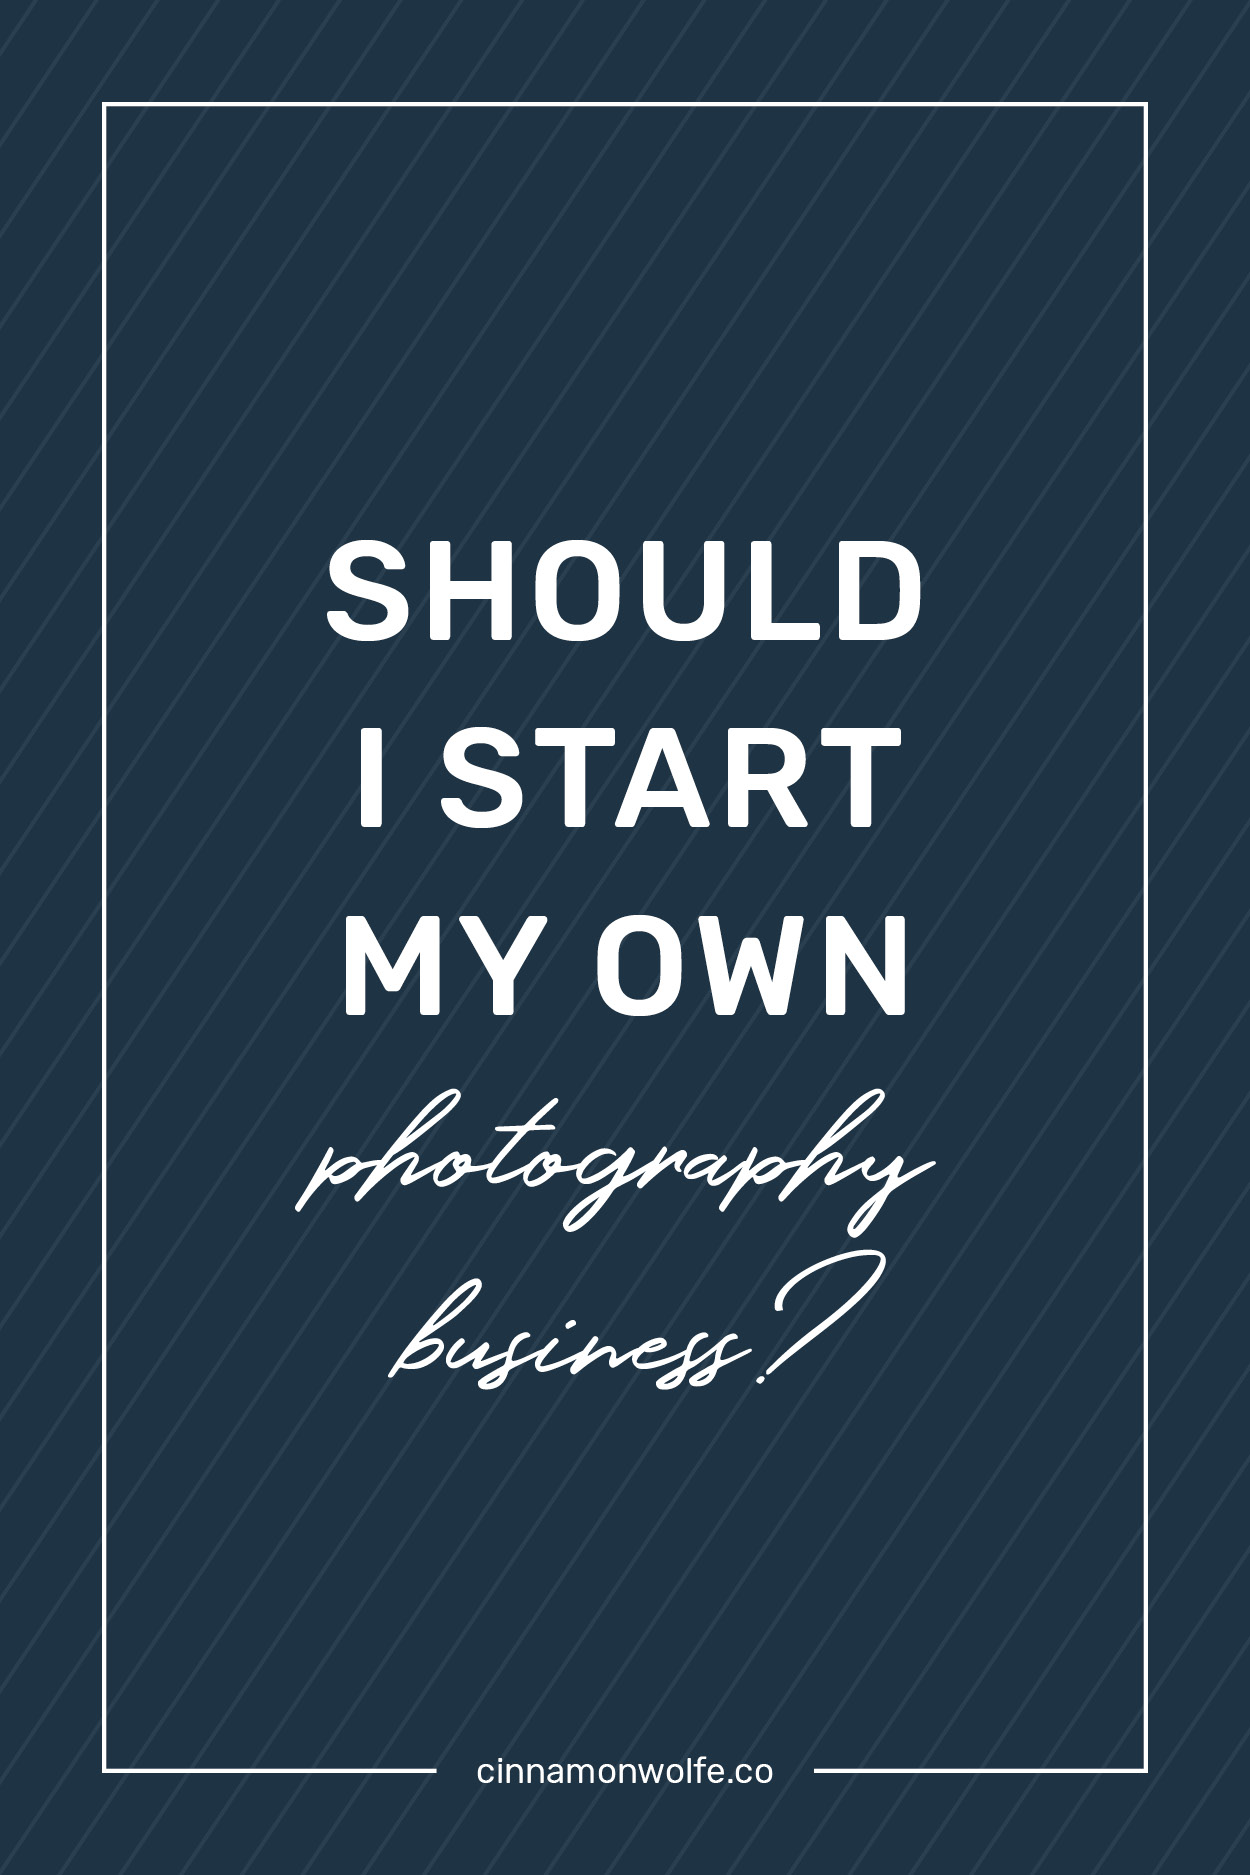 should I start my own photography business?